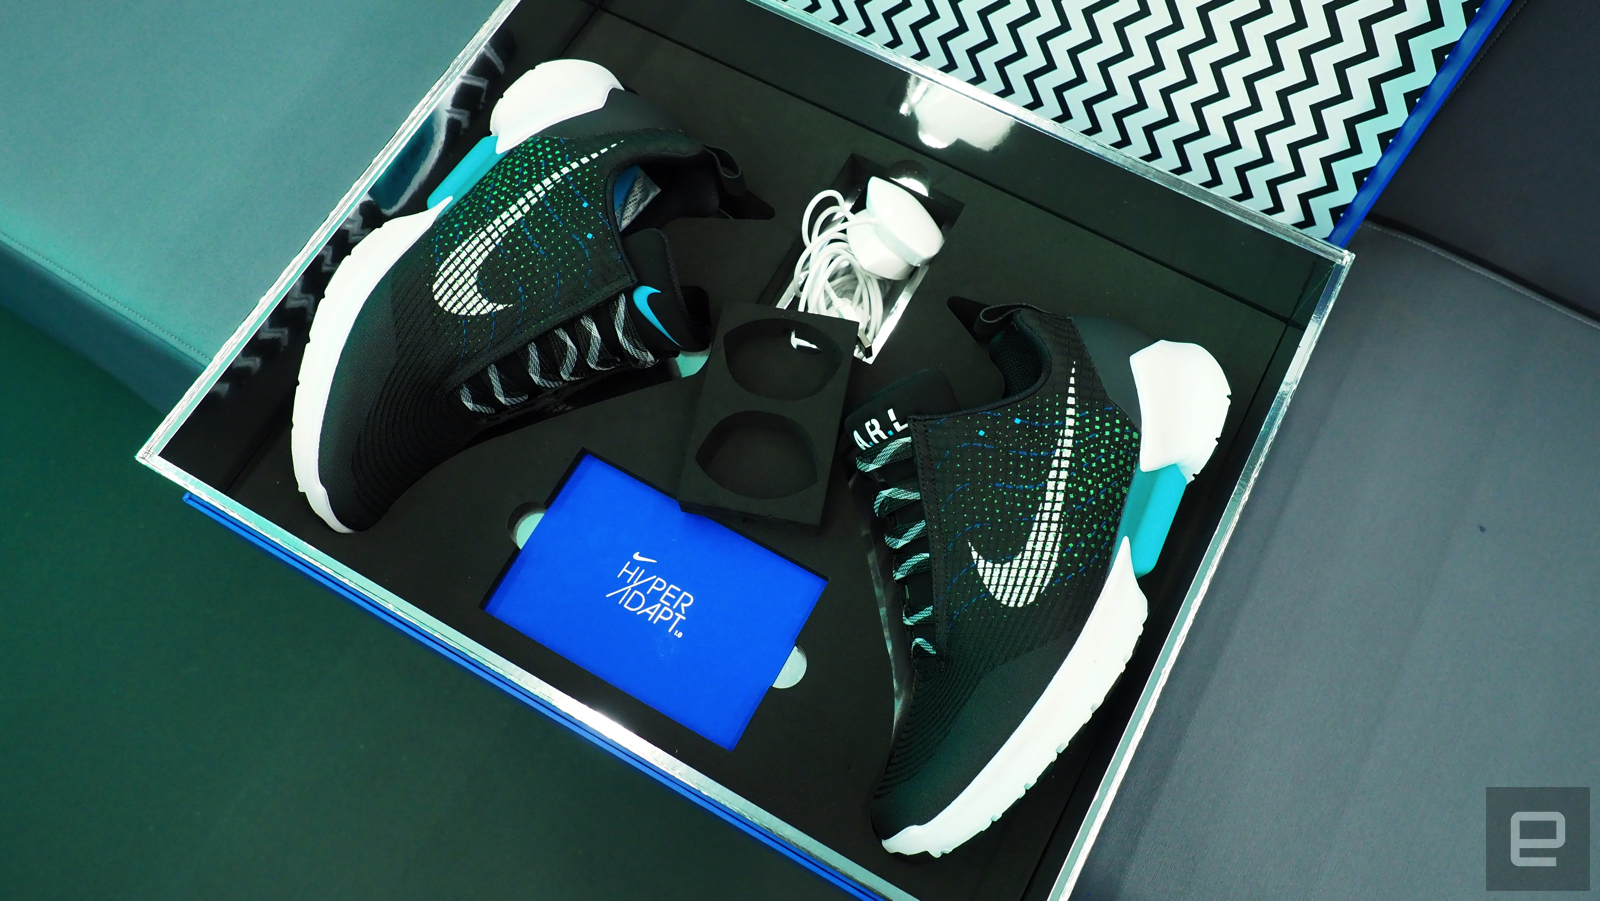 f50a7bdbaf95 A first look at Nike s self-lacing HyperAdapt sneakers